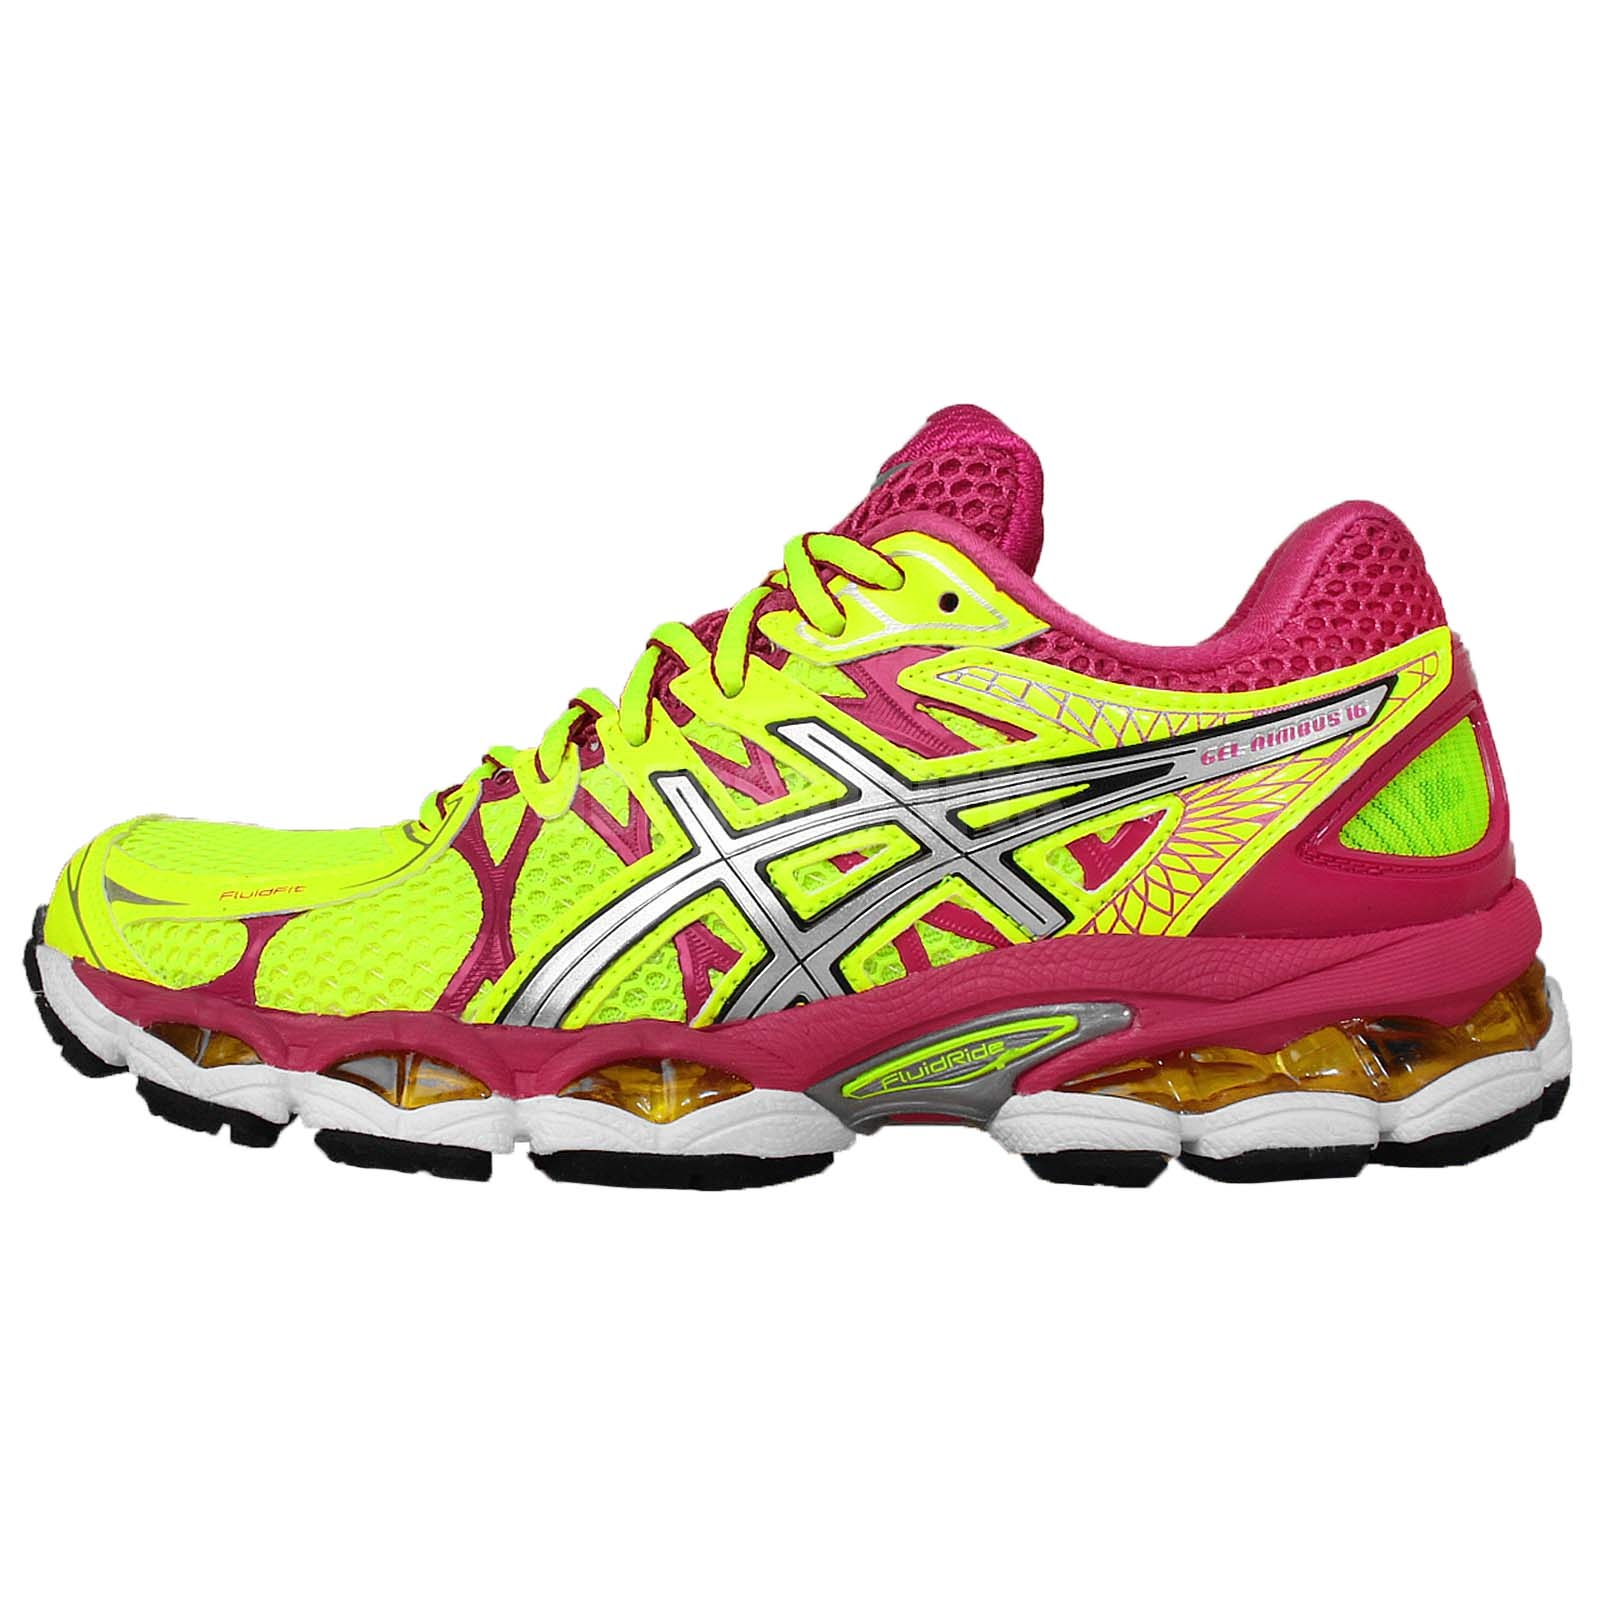 asics gel nimbus 16 flash yellow pink silver womens jogging running shoes ebay. Black Bedroom Furniture Sets. Home Design Ideas